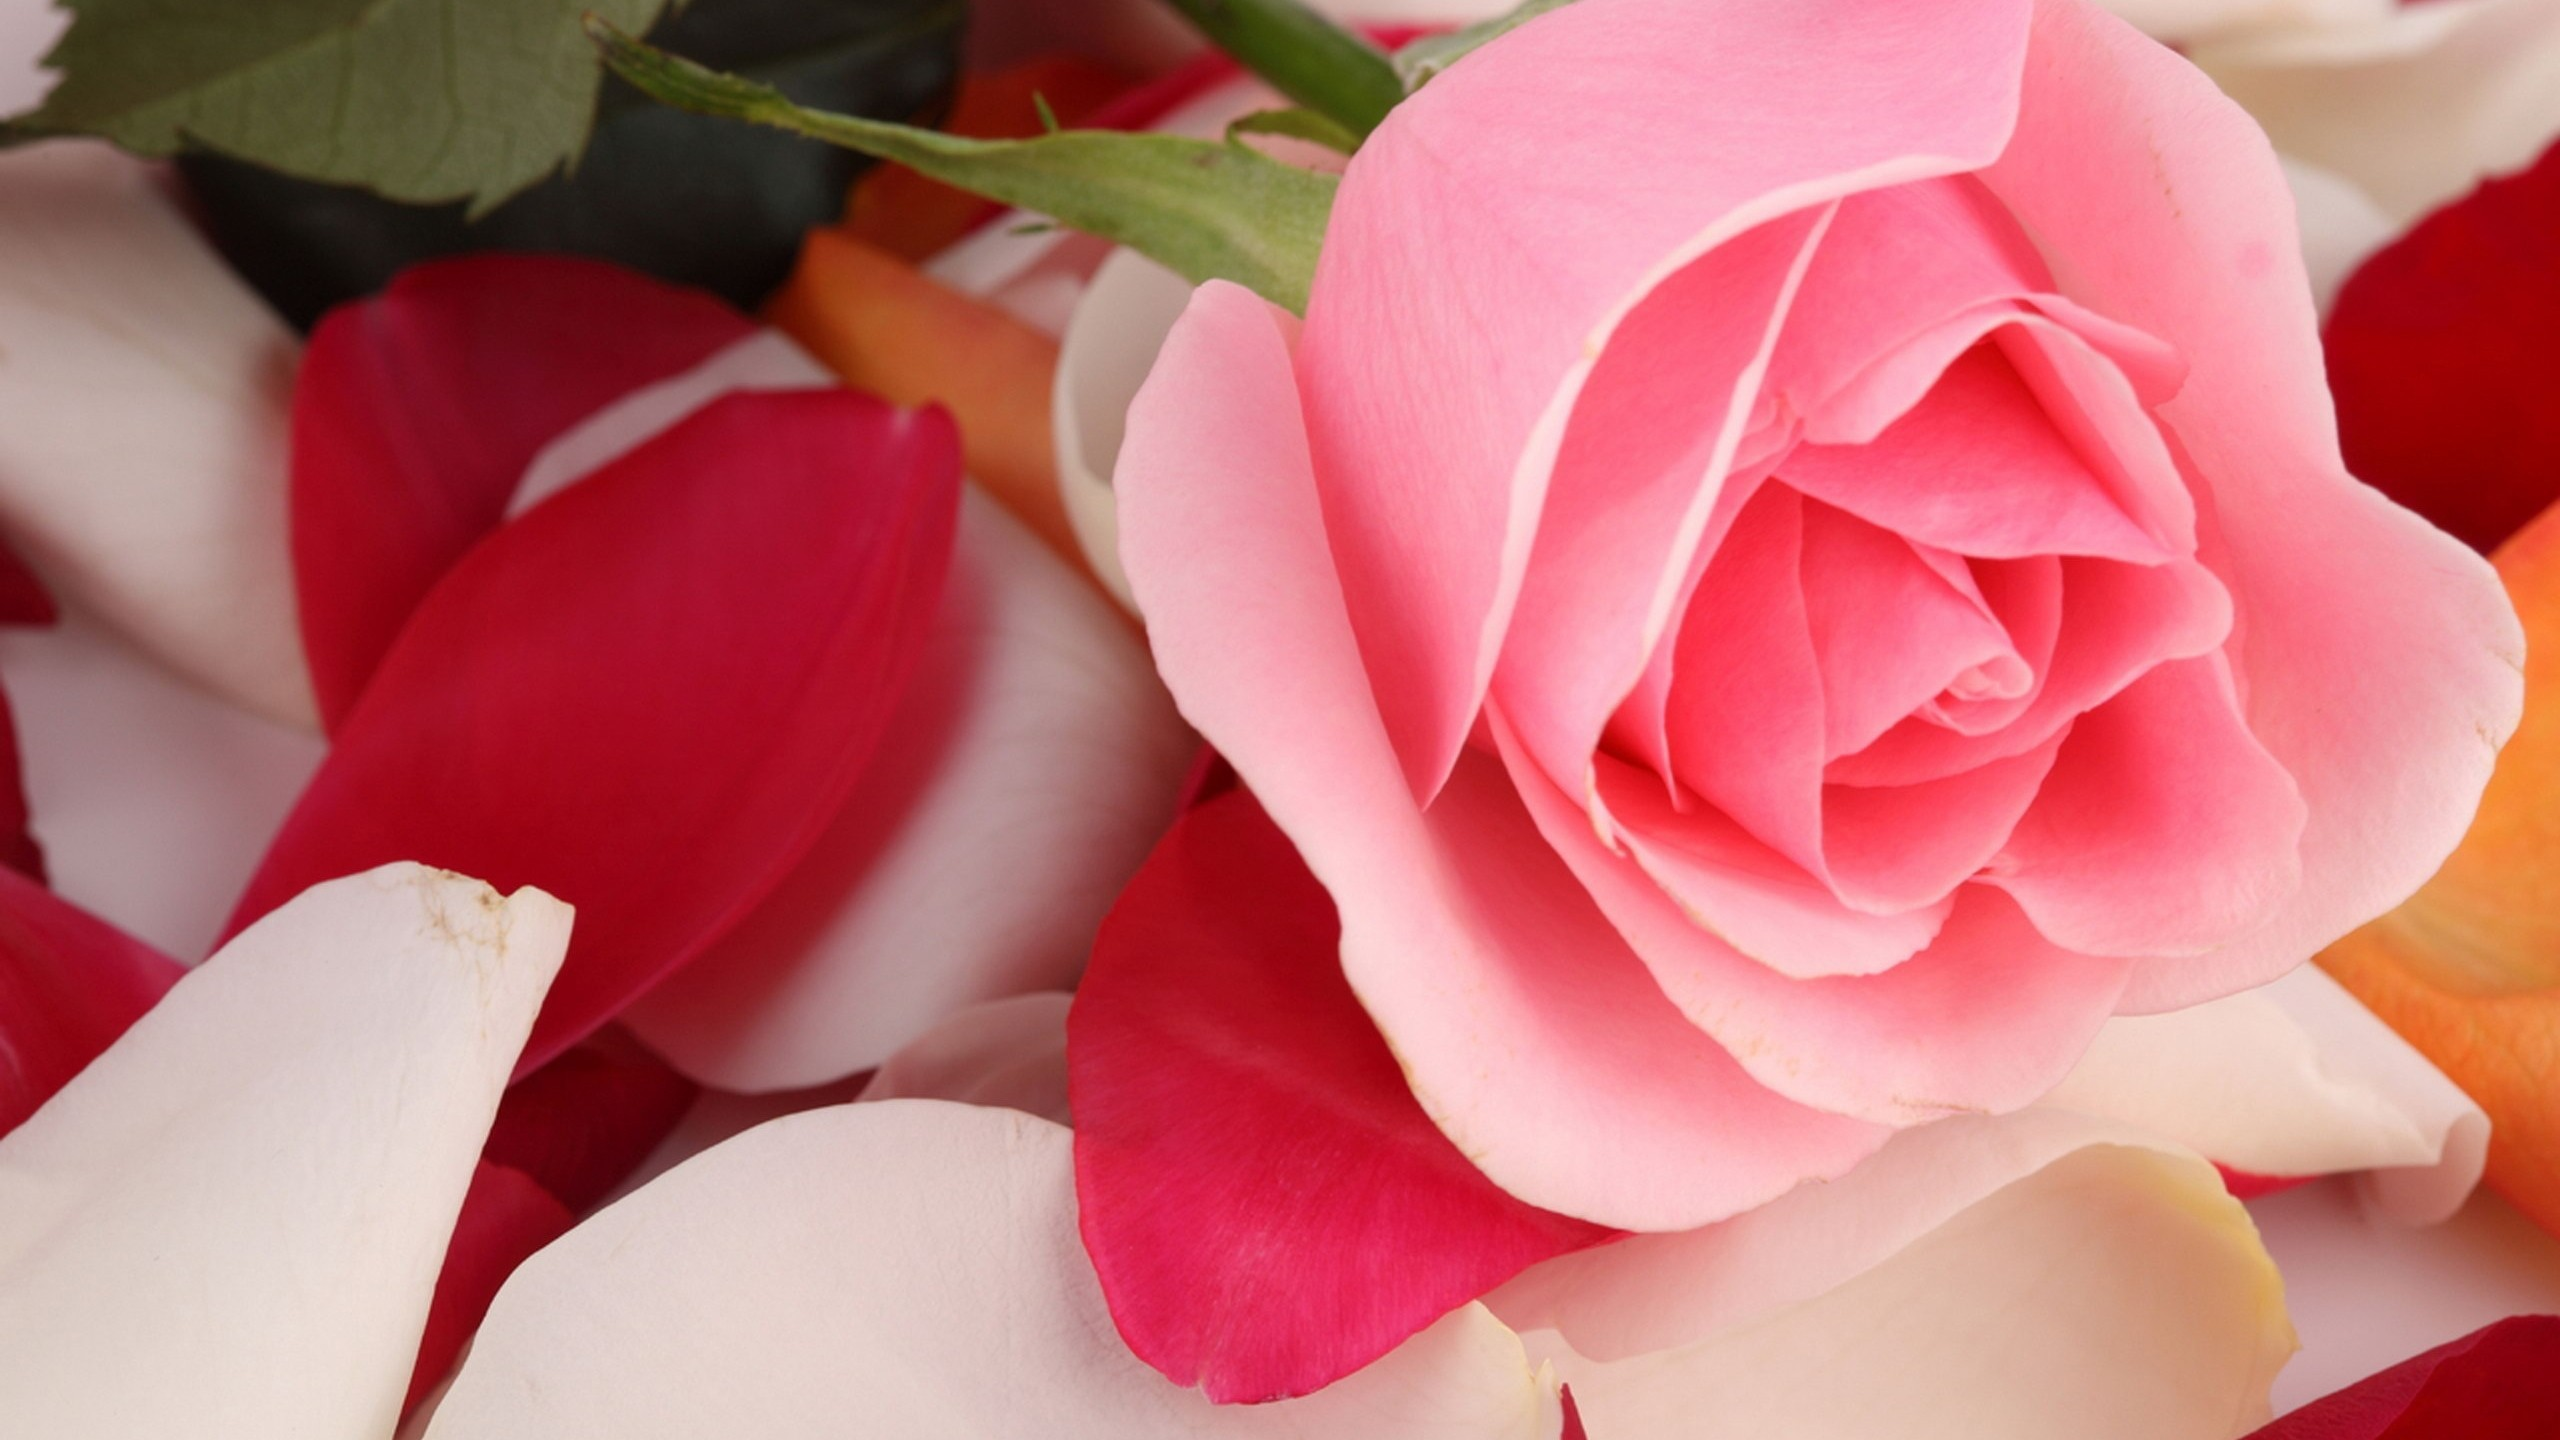 Res: 2560x1440, Flowers / Pink rose Wallpaper